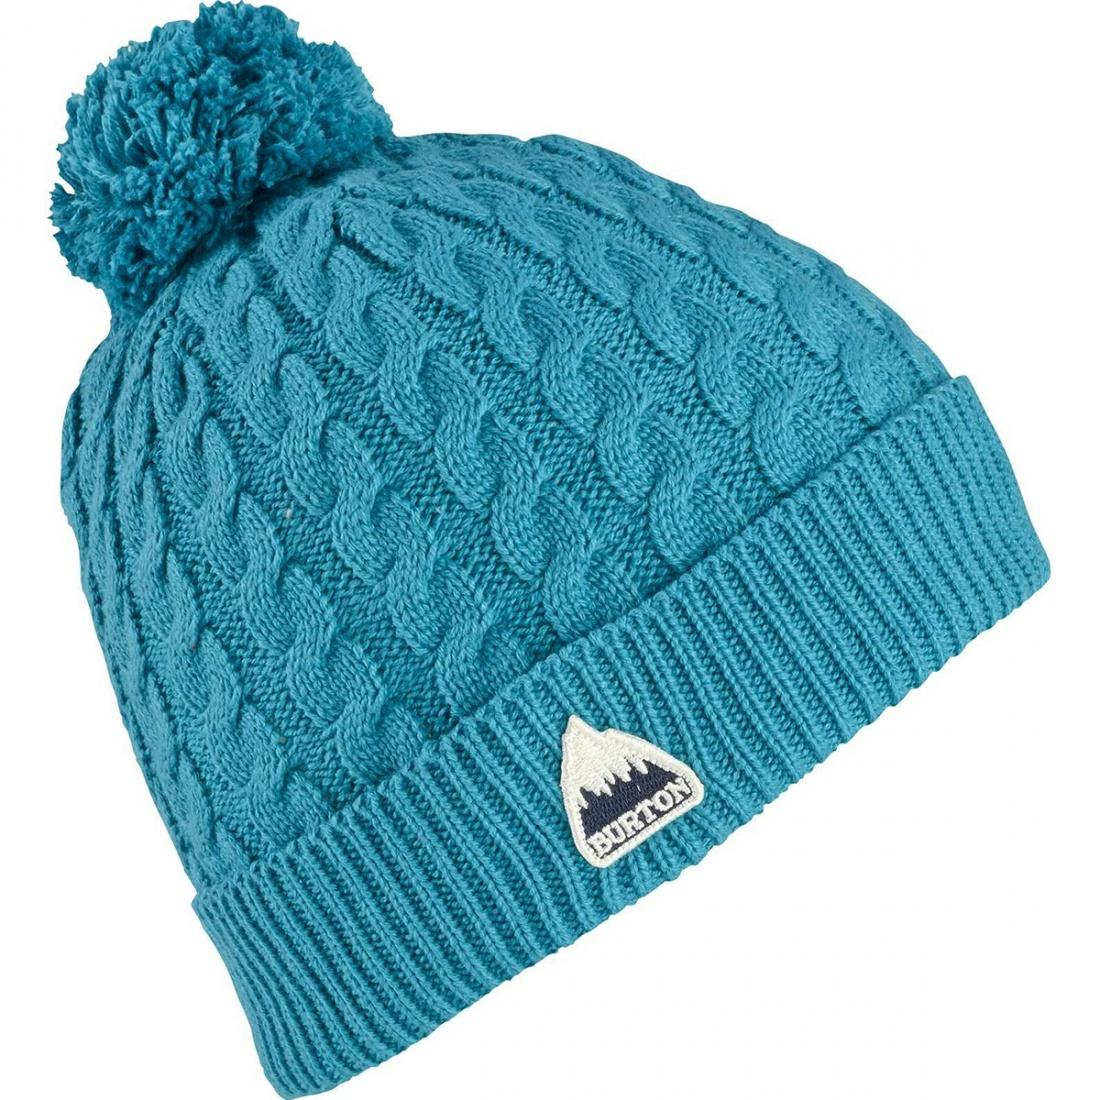 Burton Шапка Burton Mini Cable Beanie LARKSPUR, , , FW18 burton термоноски burton party sock wings fw18 l